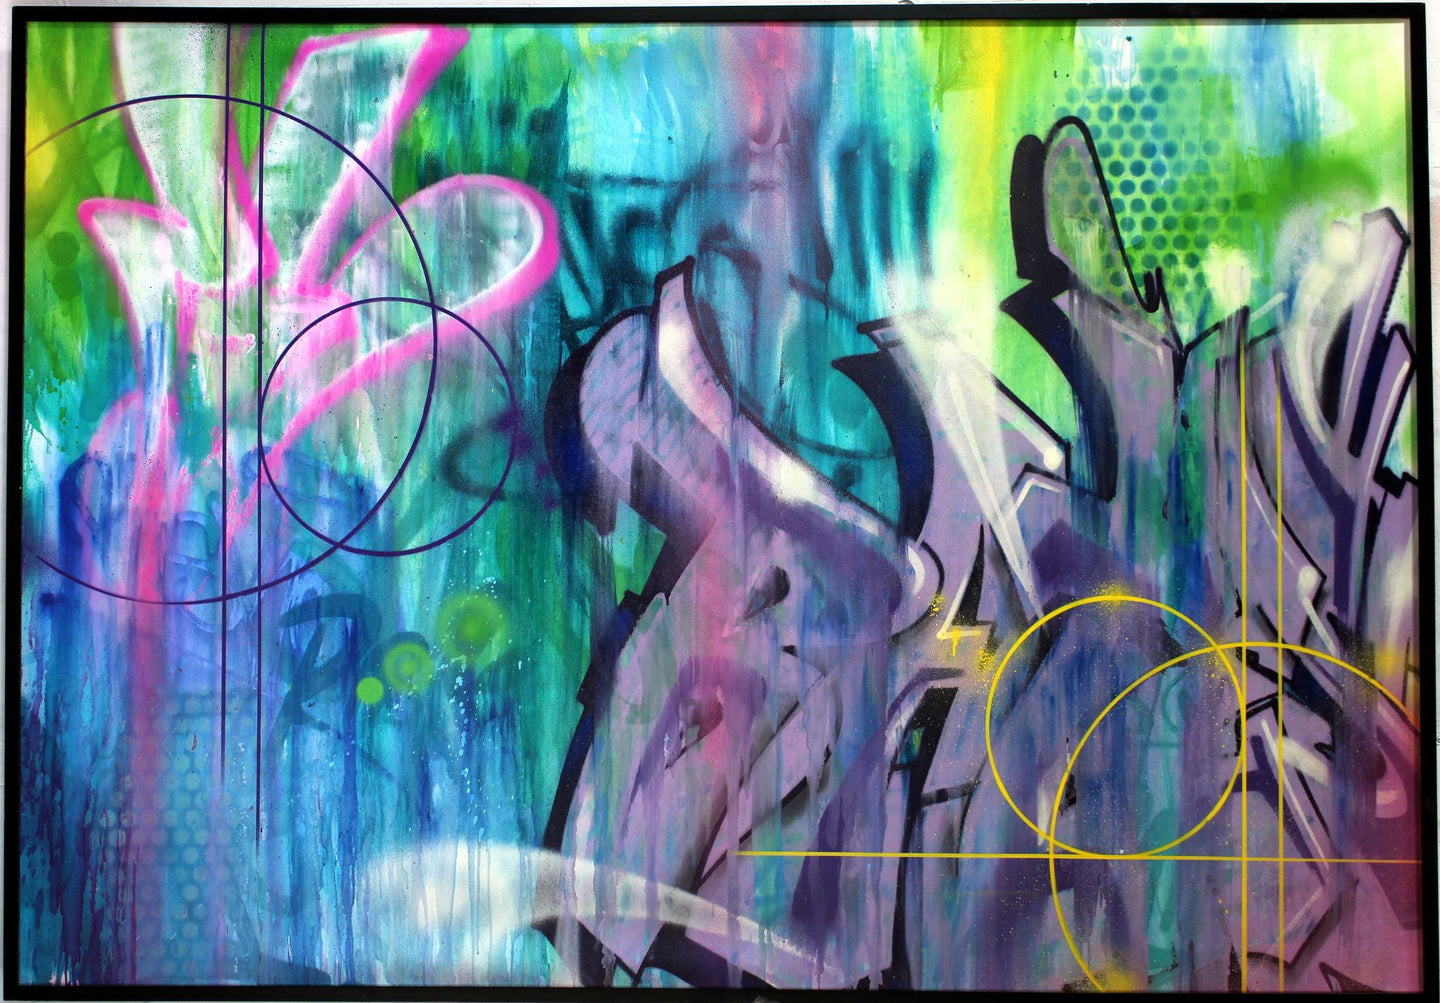 Risk and Bates Original Painting.  West Coast and Europe Graffiti Legends - RISK